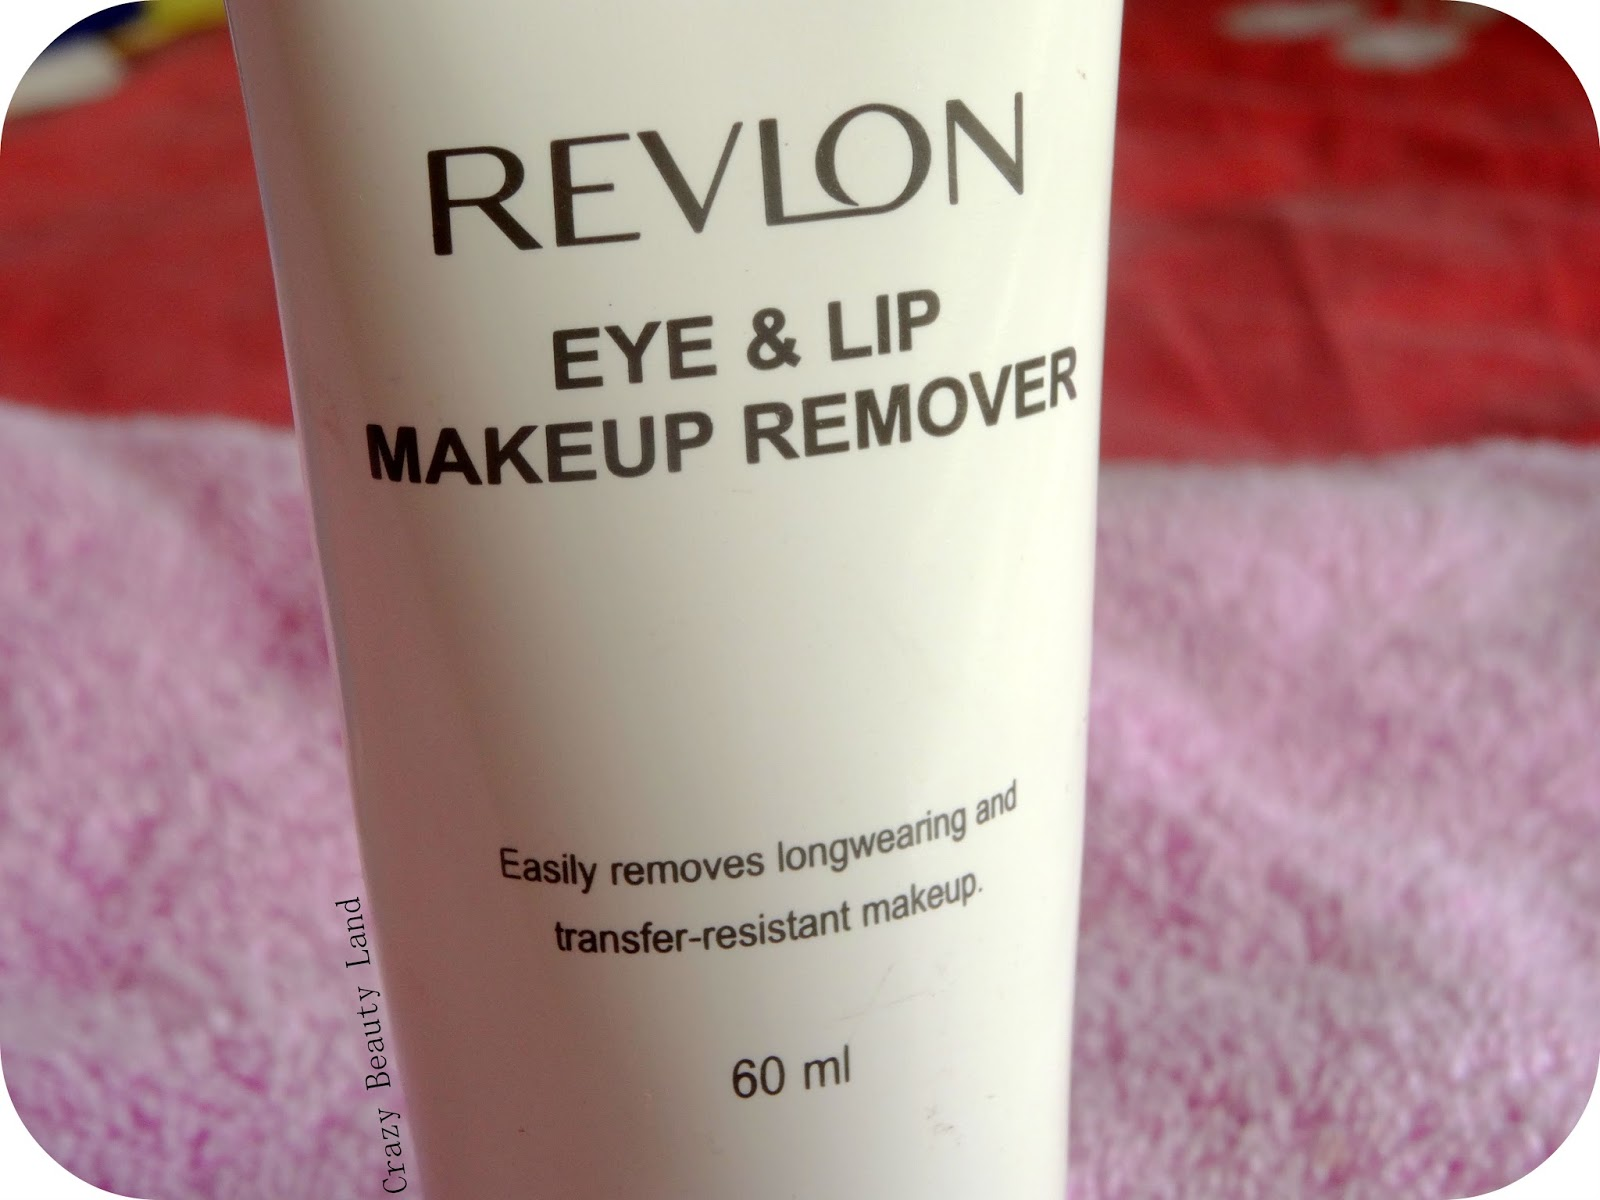 Revlon Eye and Lip Makeup Remover Review